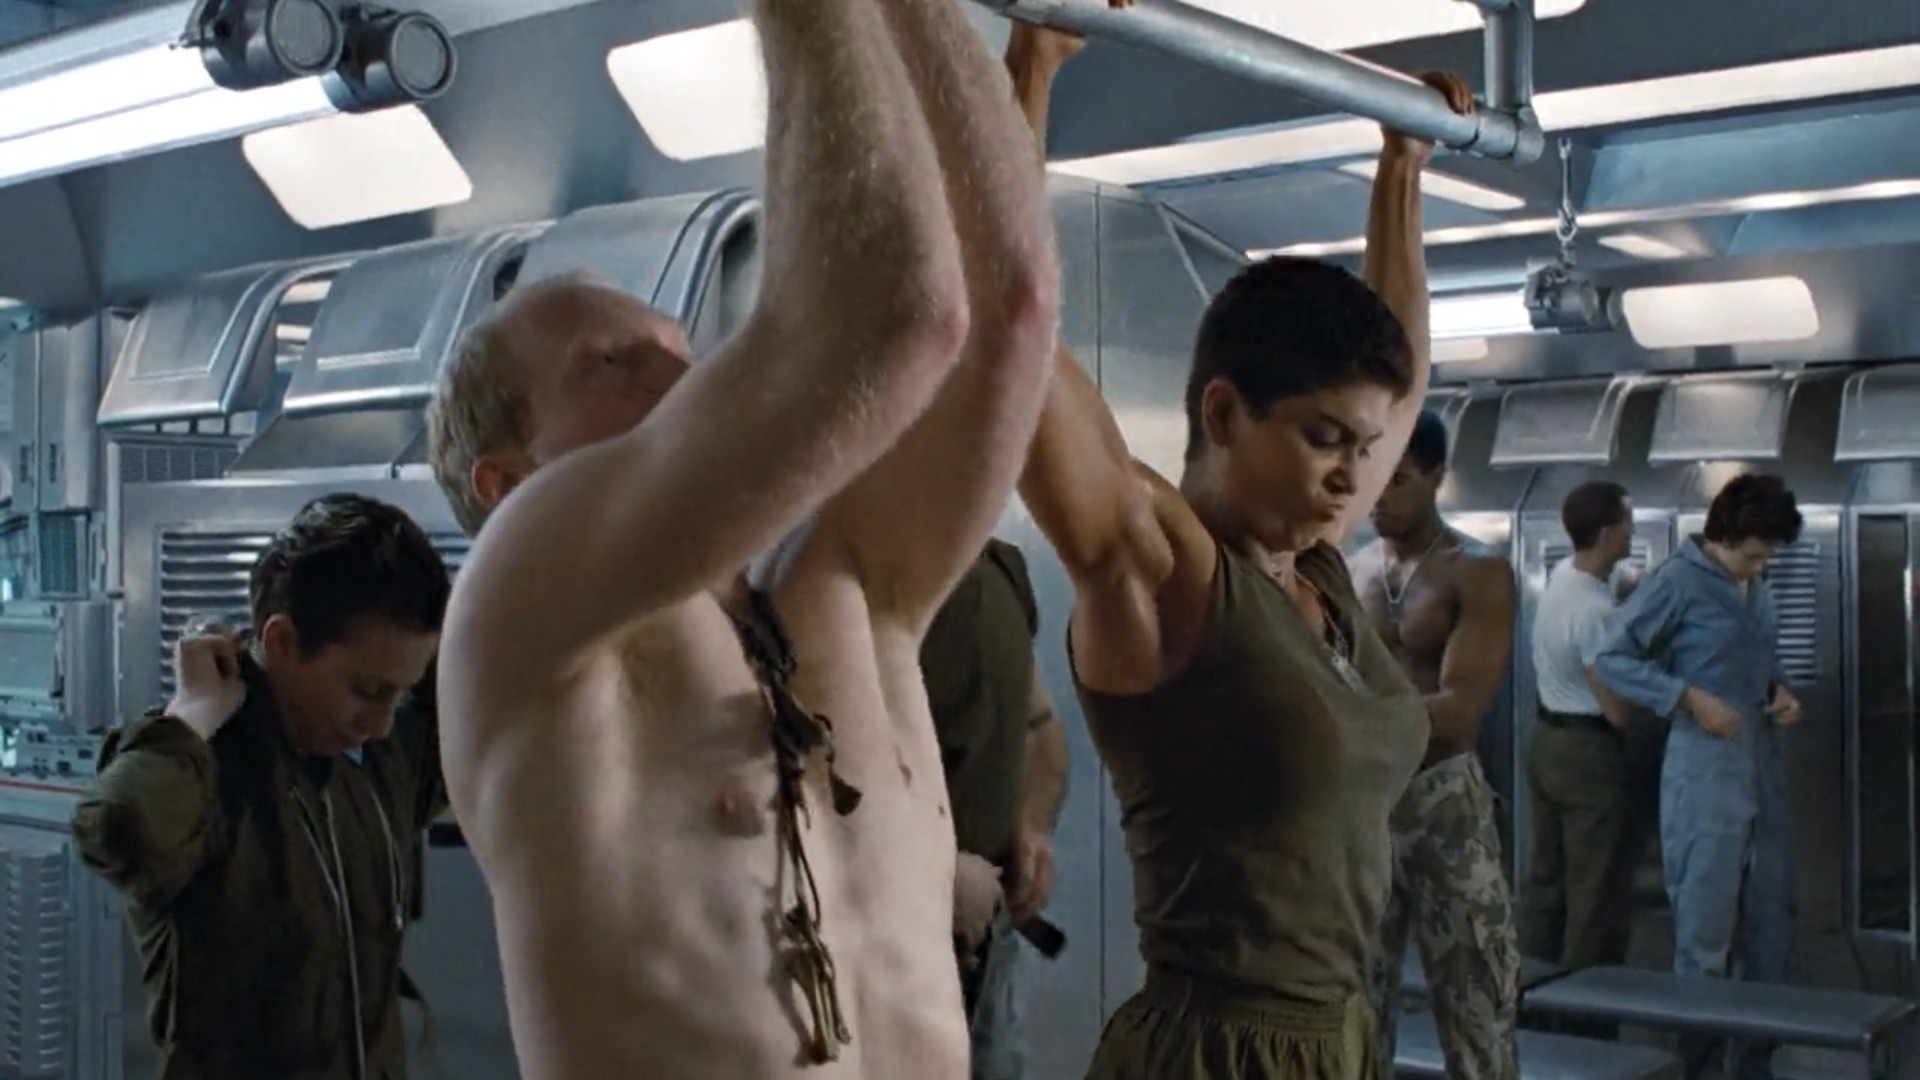 Pvt. Vasquez (Jenette Goldstein) shows off in front of her male counterparts while the Sulaco crew makes fun of Ripley from afar.